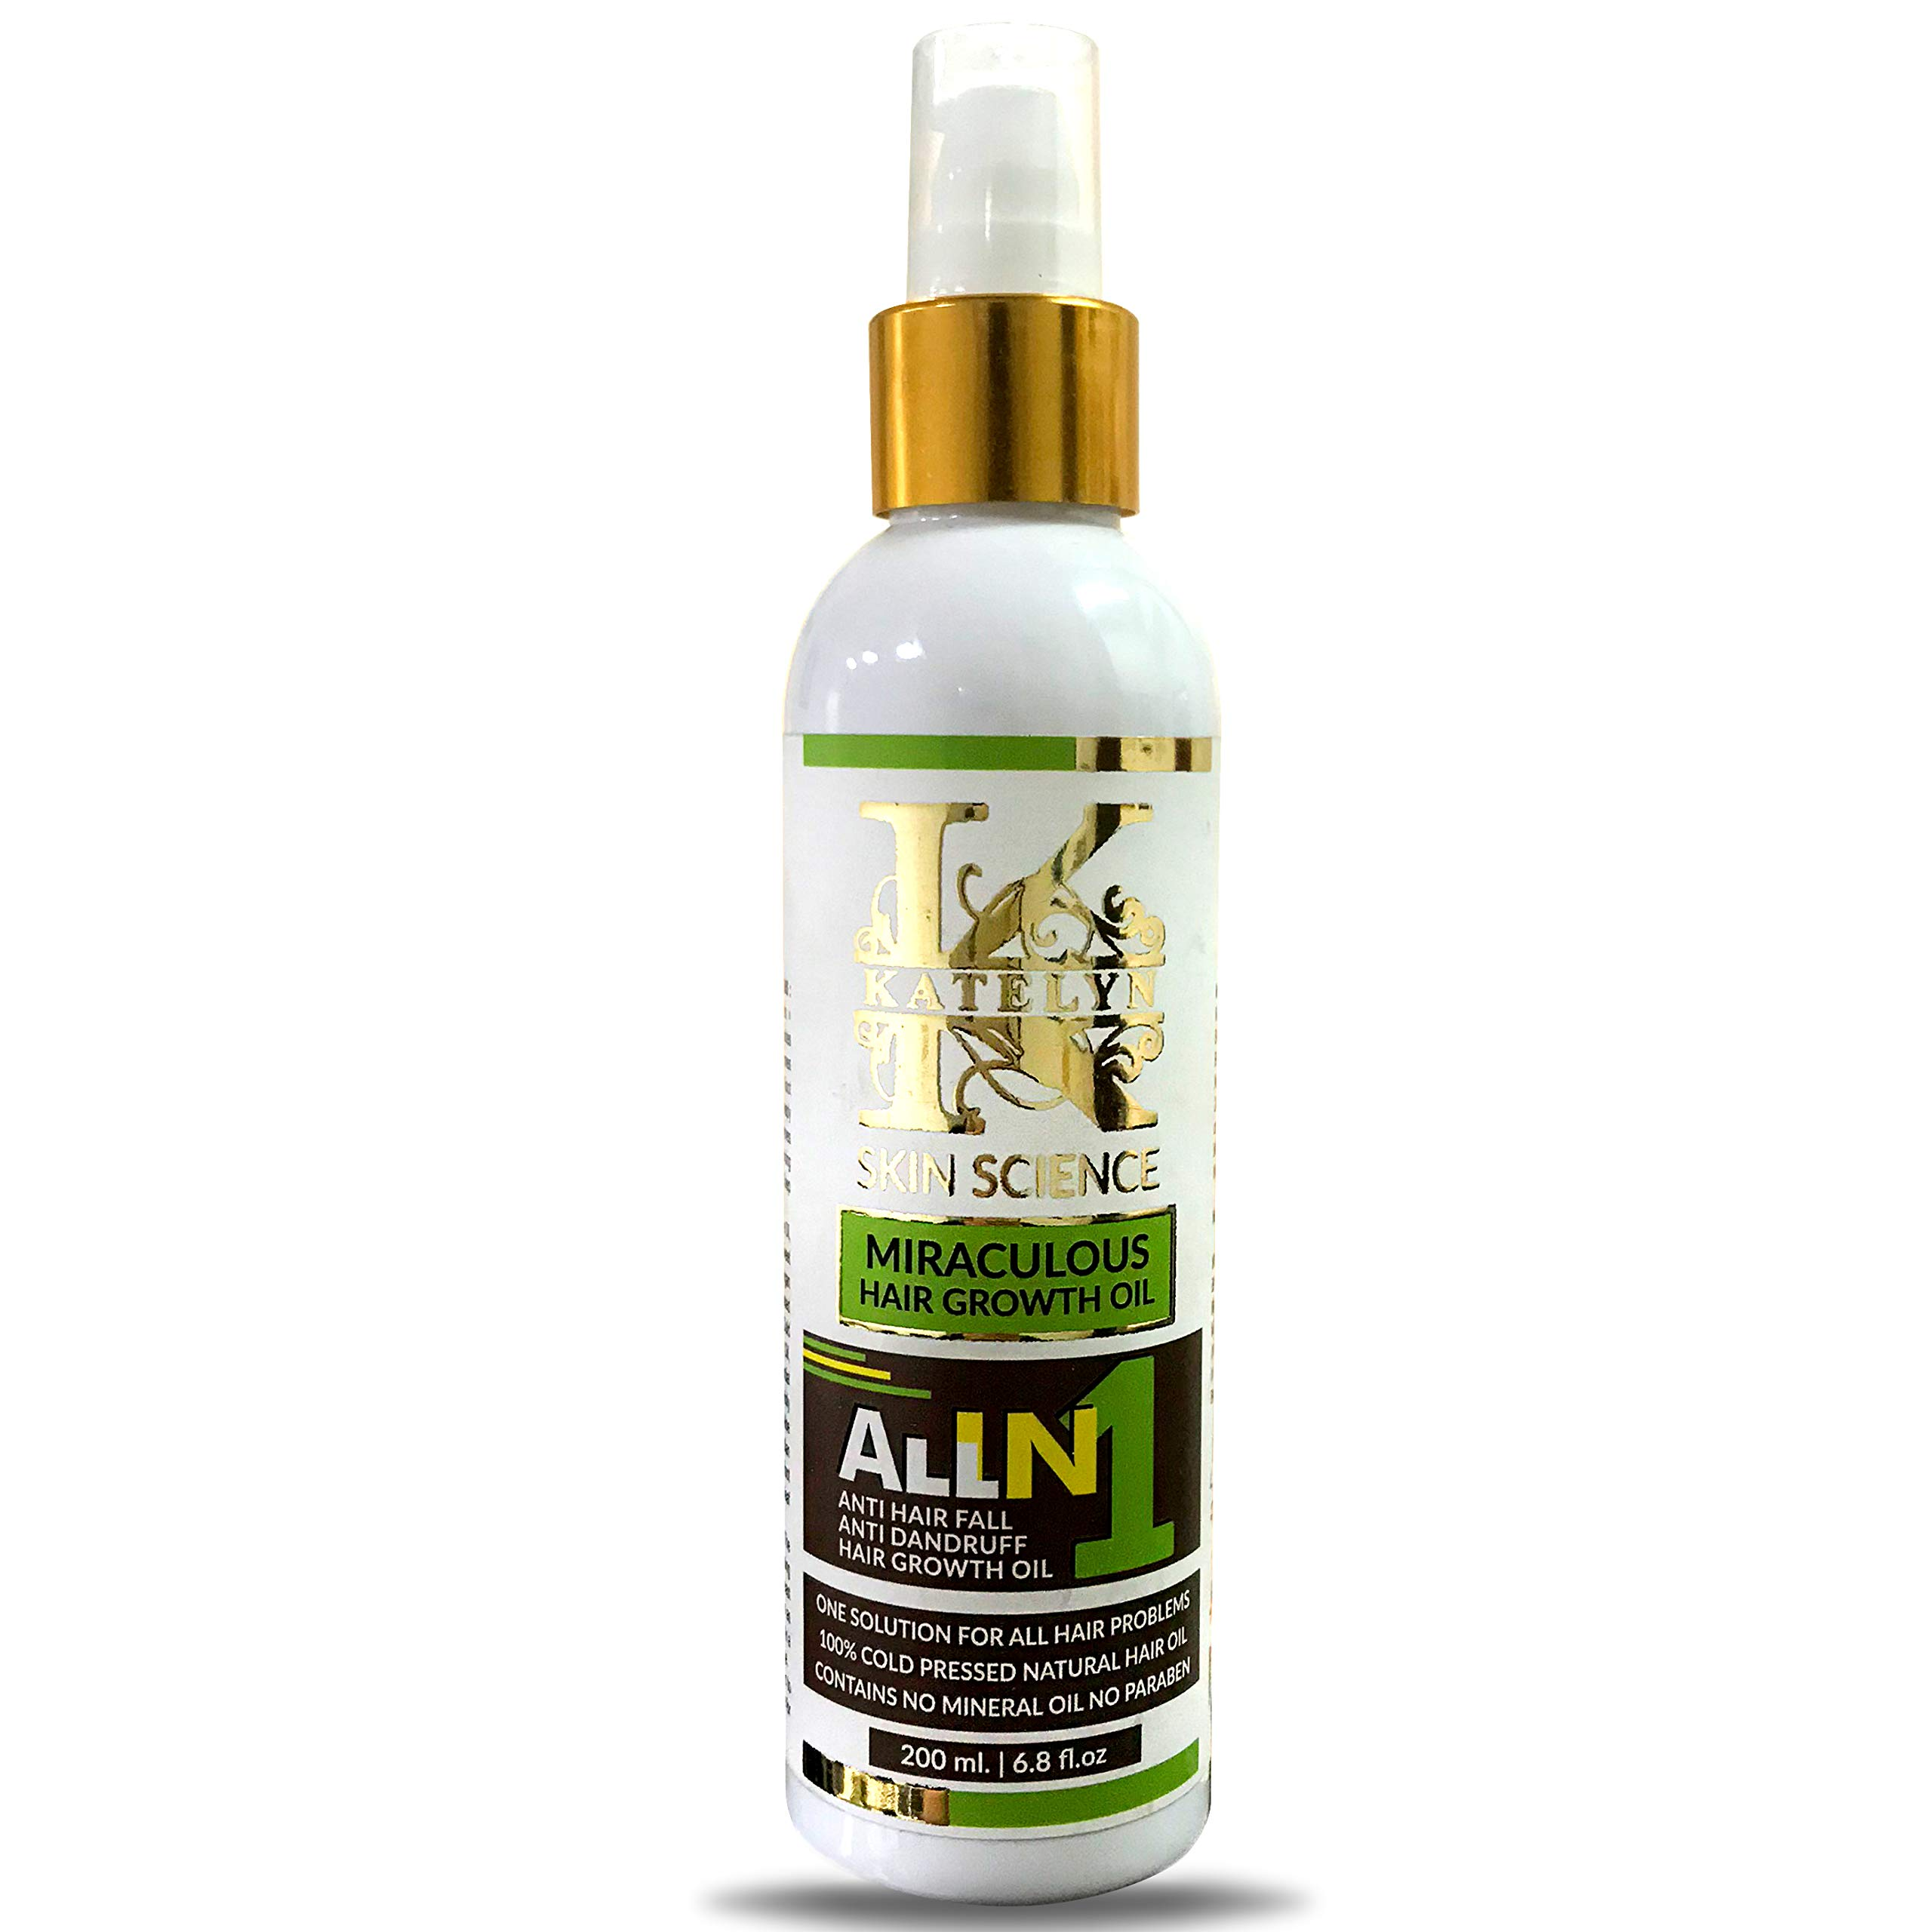 Katelyn All in One Miraculous Hair Growth Oil 200ml Anti Hair Loss Oil, Anti Dandruff Oil, Hair Growth Oil, One Solution For All Hair Problem 100% Cold Pressed Natural Hair Oil product image